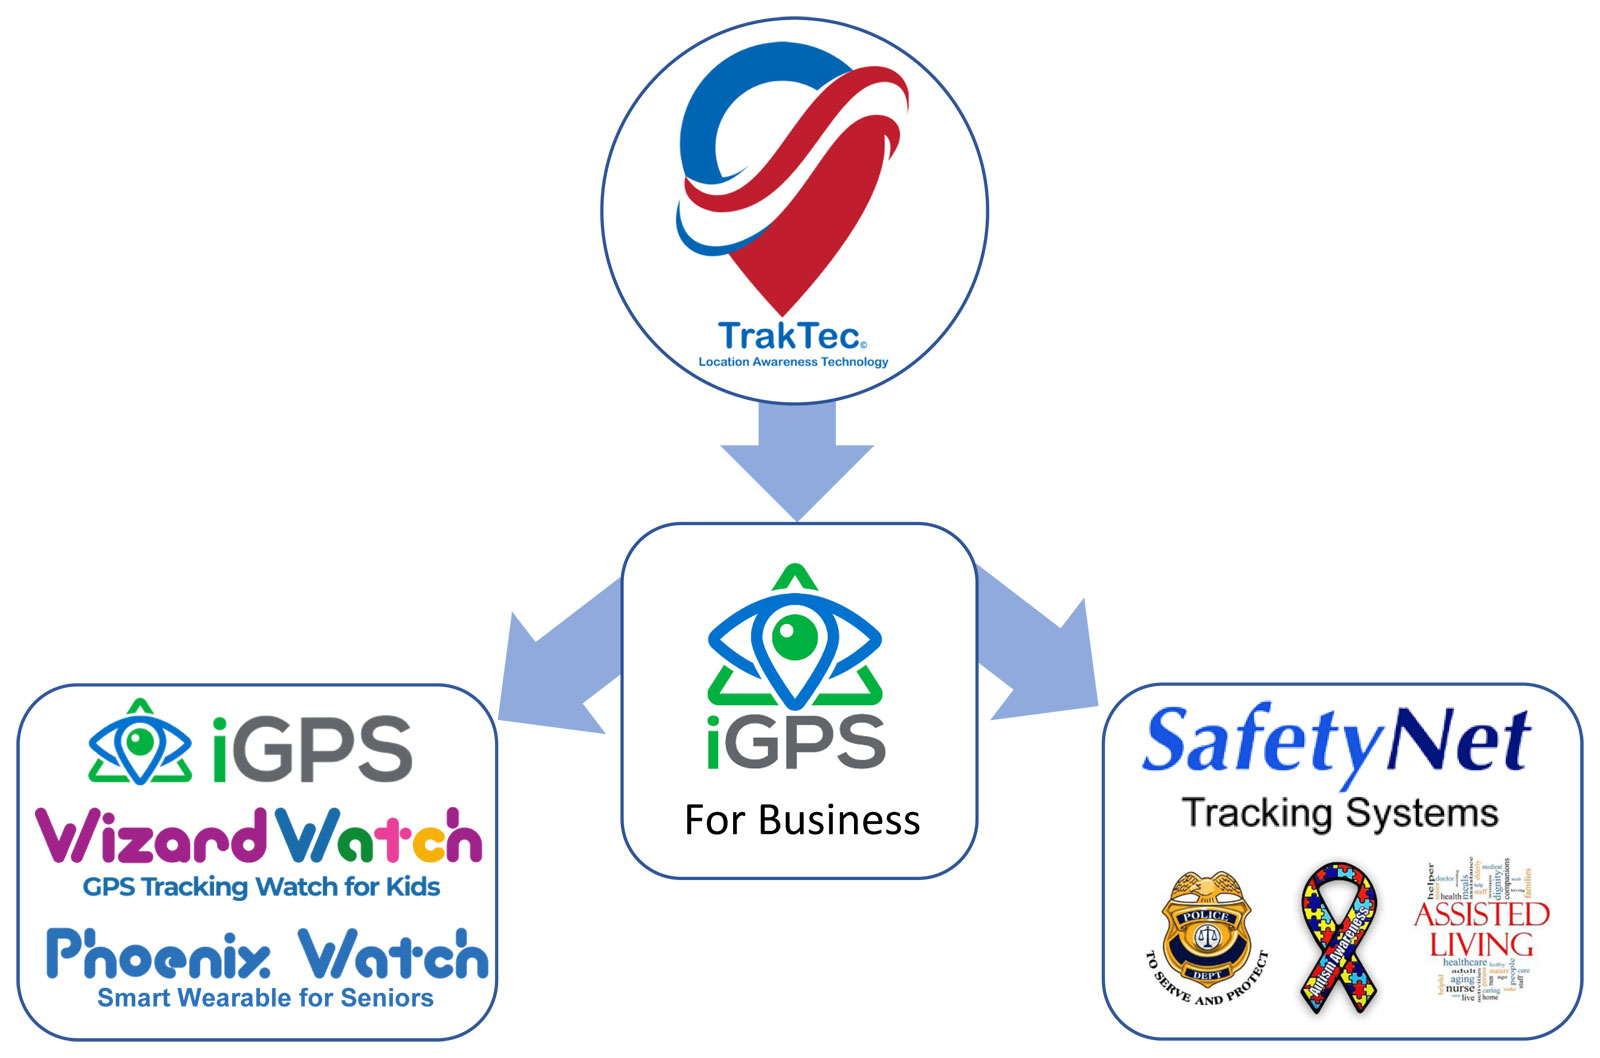 TrakTec Location Awareness Technology three lines of business